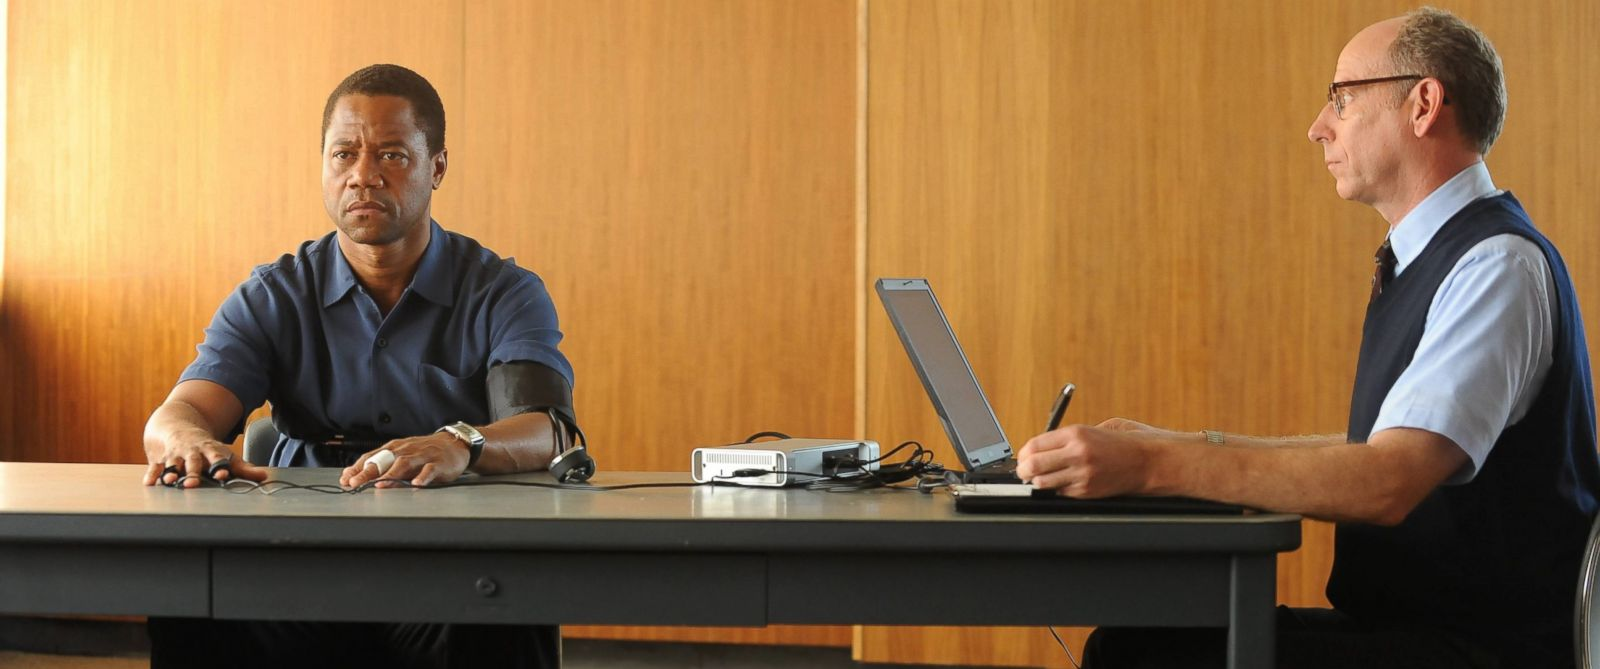 """PHOTO: Cuba Gooding, Jr. and Joseph Buttler appear in """"The People v O.J. Simpson: American Crime Story,"""" airing on Feb. 2, 2016."""